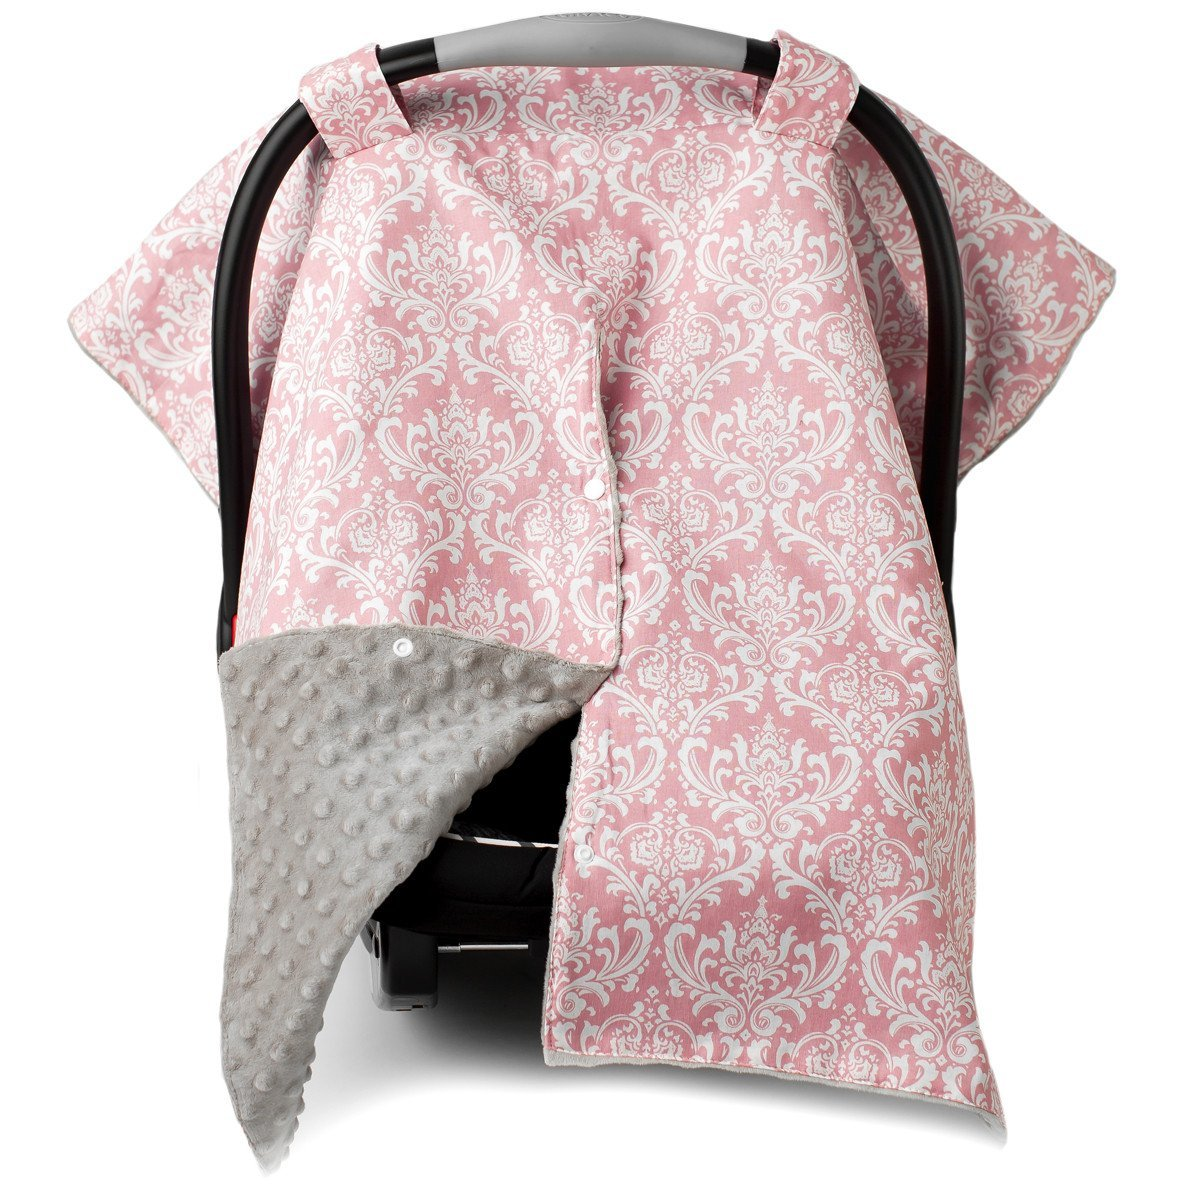 2 in 1 Carseat Canopy and Nursing Cover Up with Peekaboo Opening | Large Infant Car Seat Canopy for Girl | Best Baby Shower Gift for Breastfeeding Moms | Grey Damask Pattern with Soft Pink Minky Kids N' Such